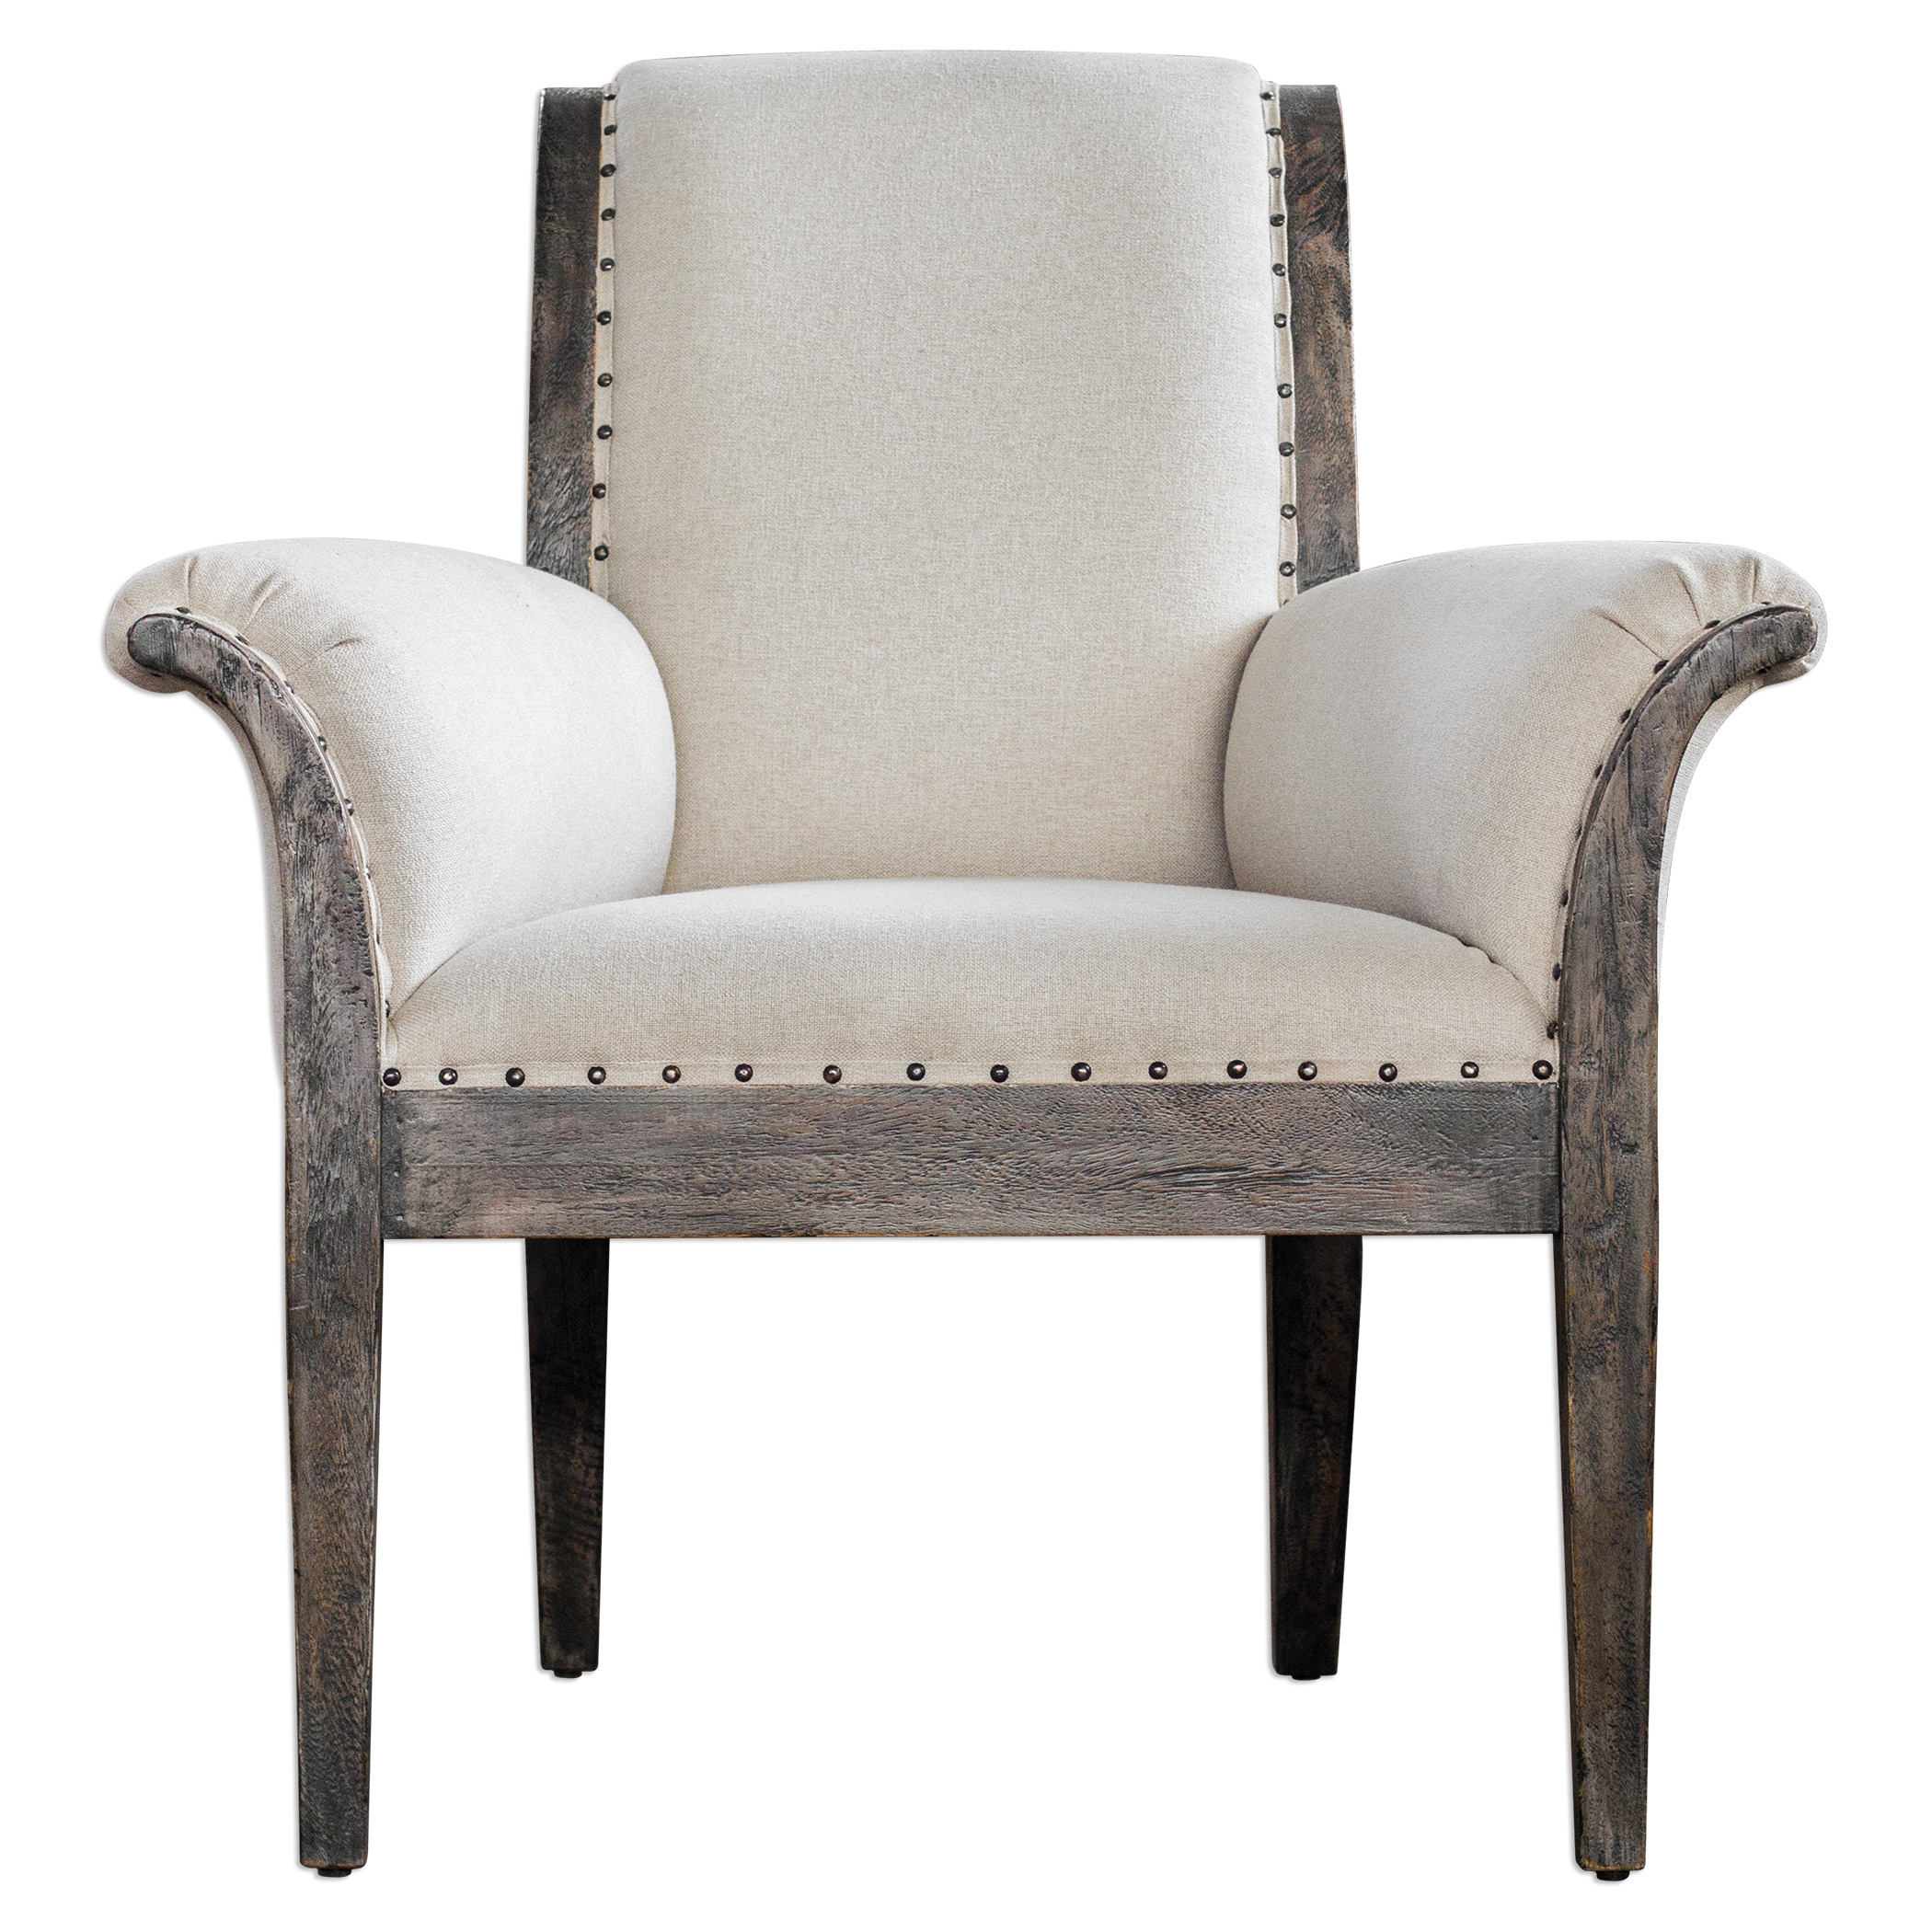 Uttermost Accent Furniture Cahira Armchair - Item Number: 23653